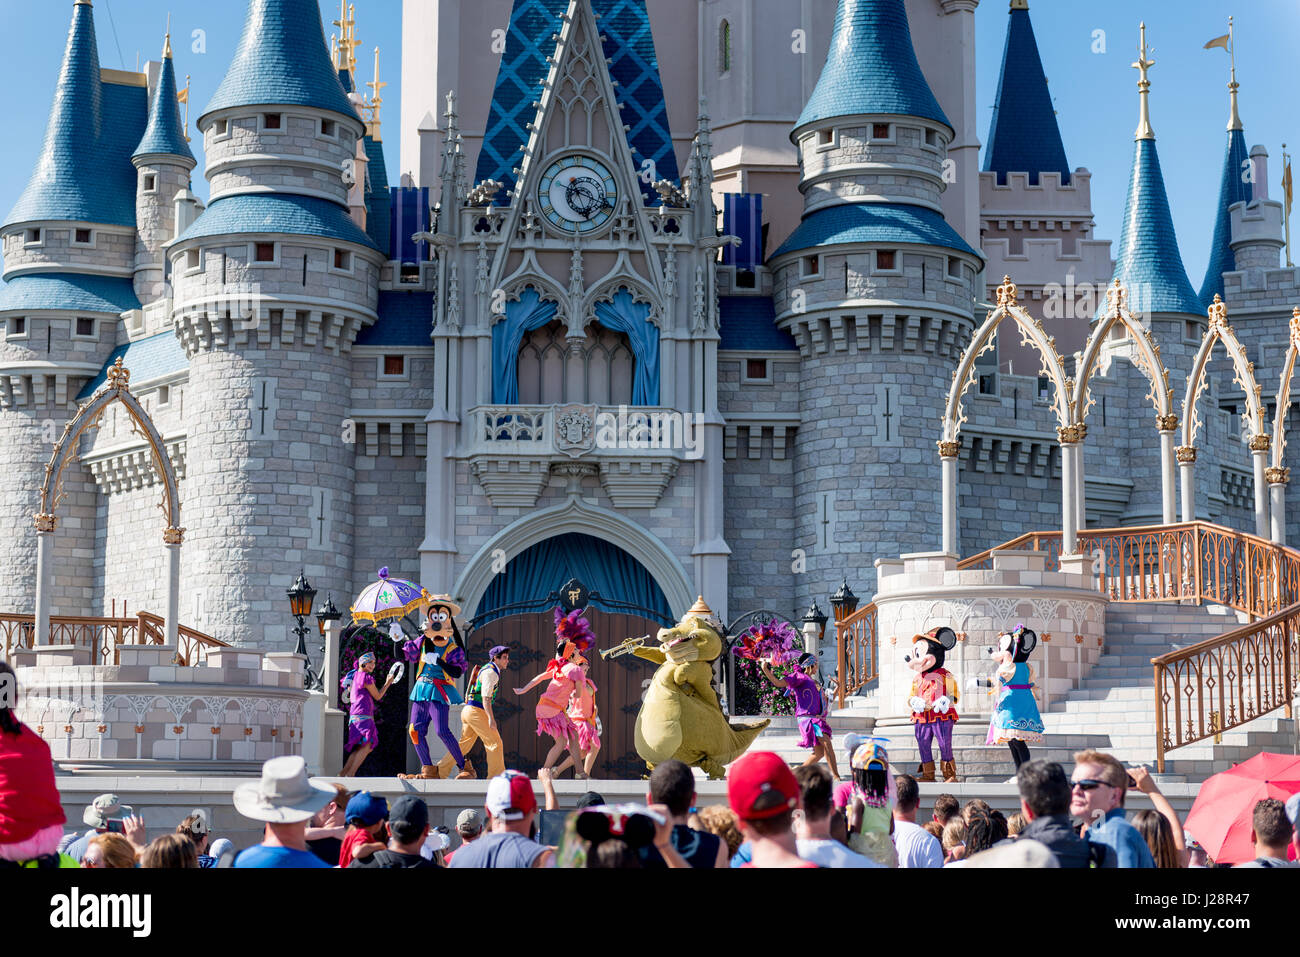 Crowd watching performance in front of Magic Kingdom Castle, Disney World. - Stock Image